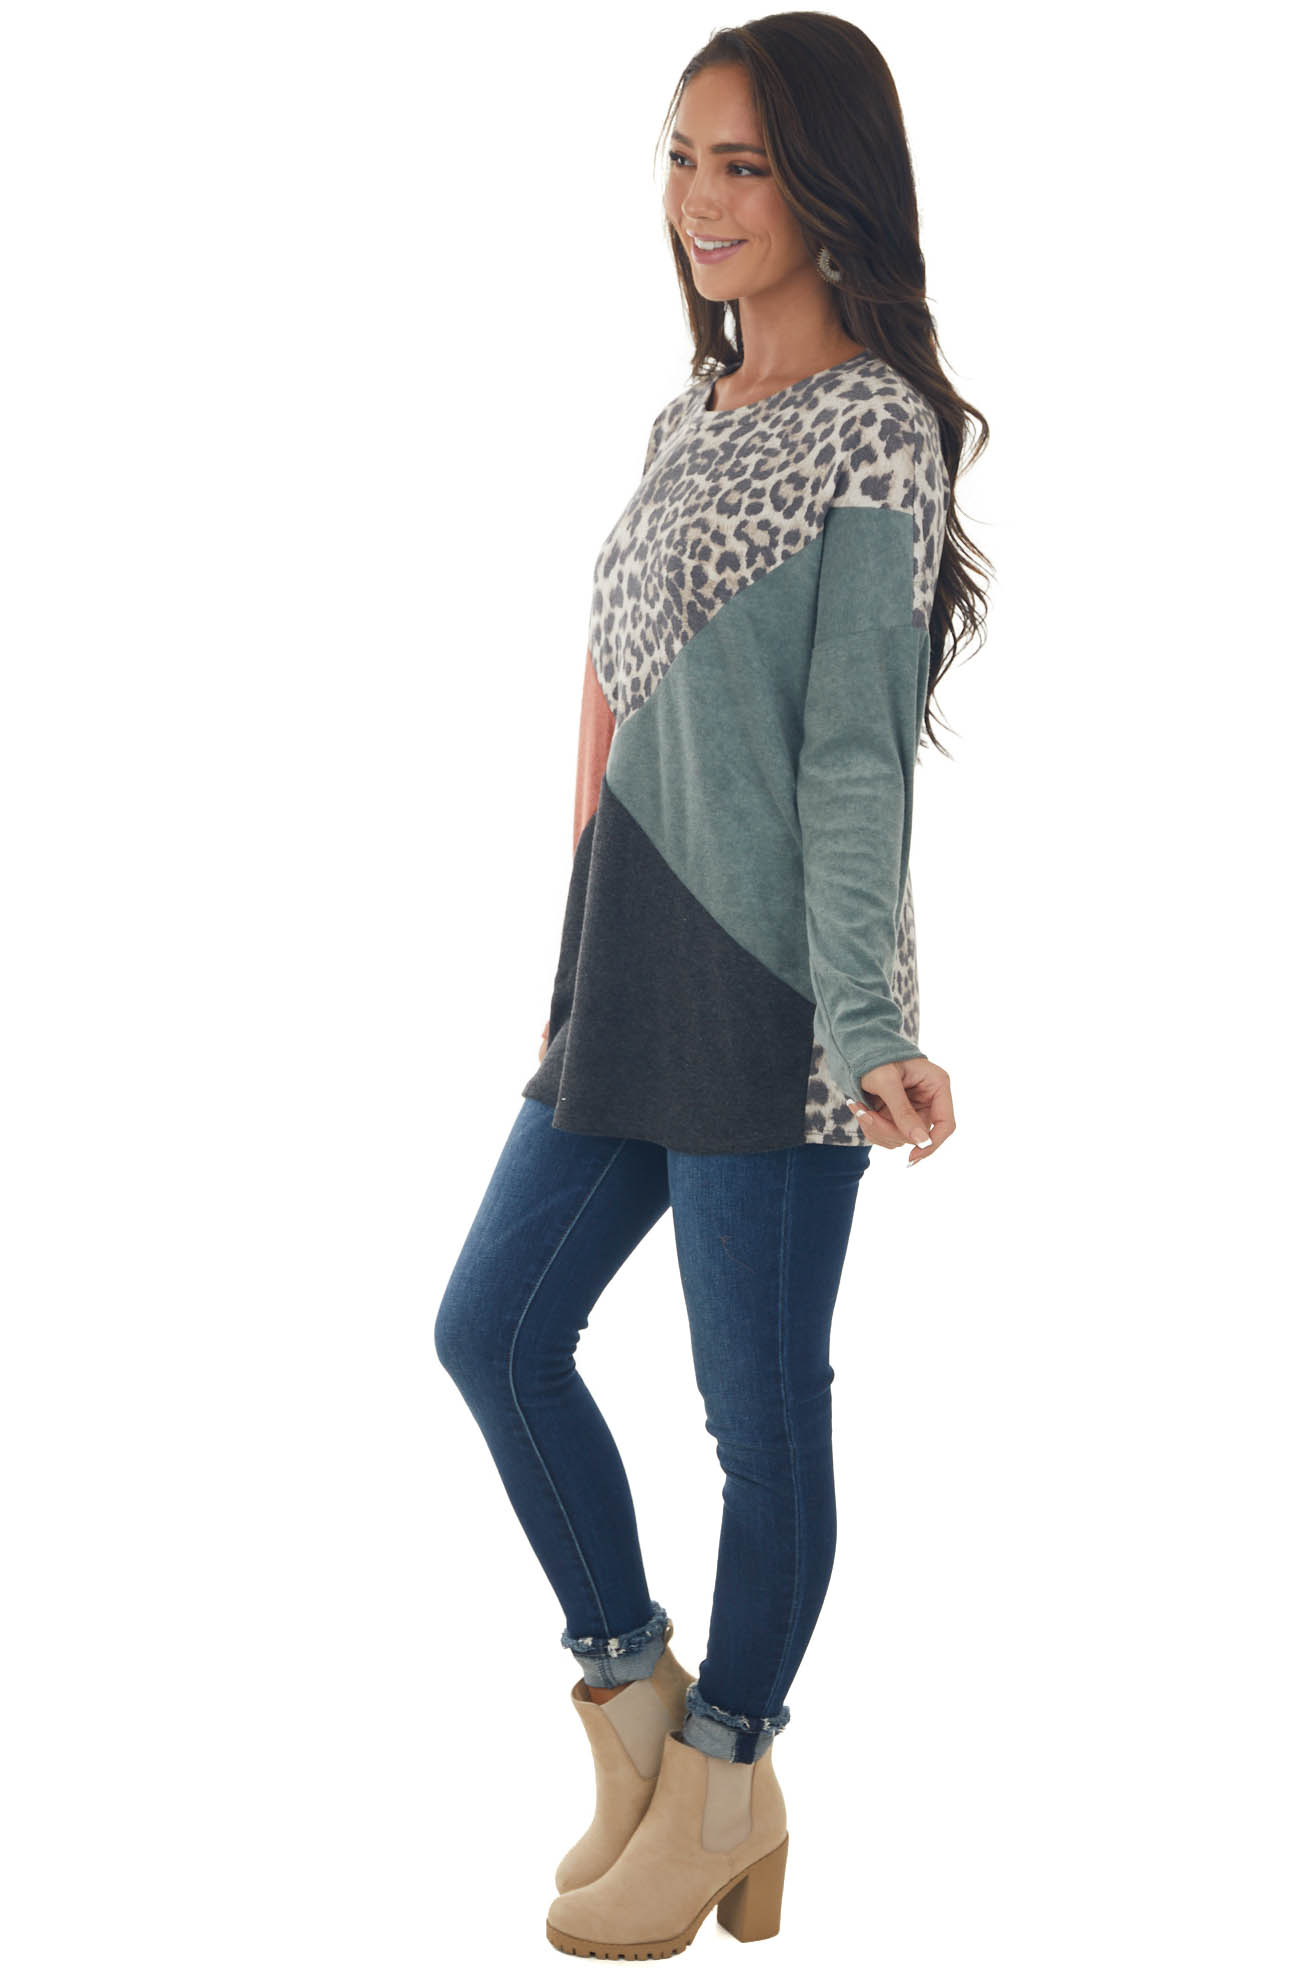 Rust and Leopard Print Colorblock Knit Top